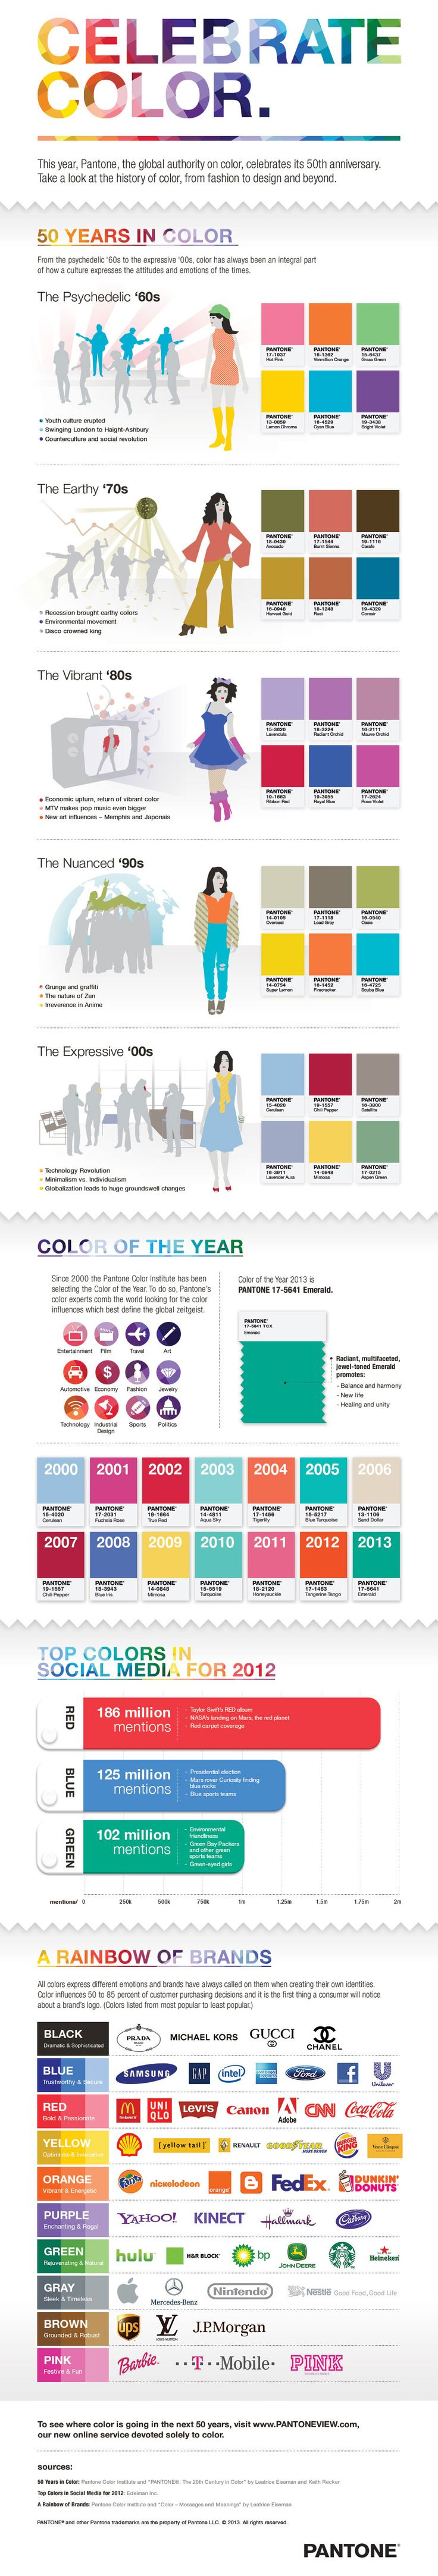 Pantone color throughout the decades in fashion of the last 50 years + Color of the Year + Pantone Colors of Social Media + brand colors.